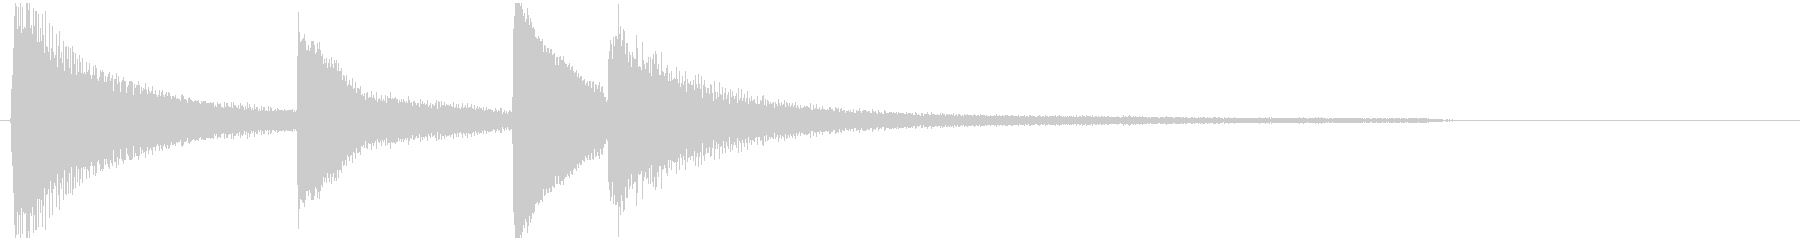 Dissapointing piano phrase Am's unreproduced waveform